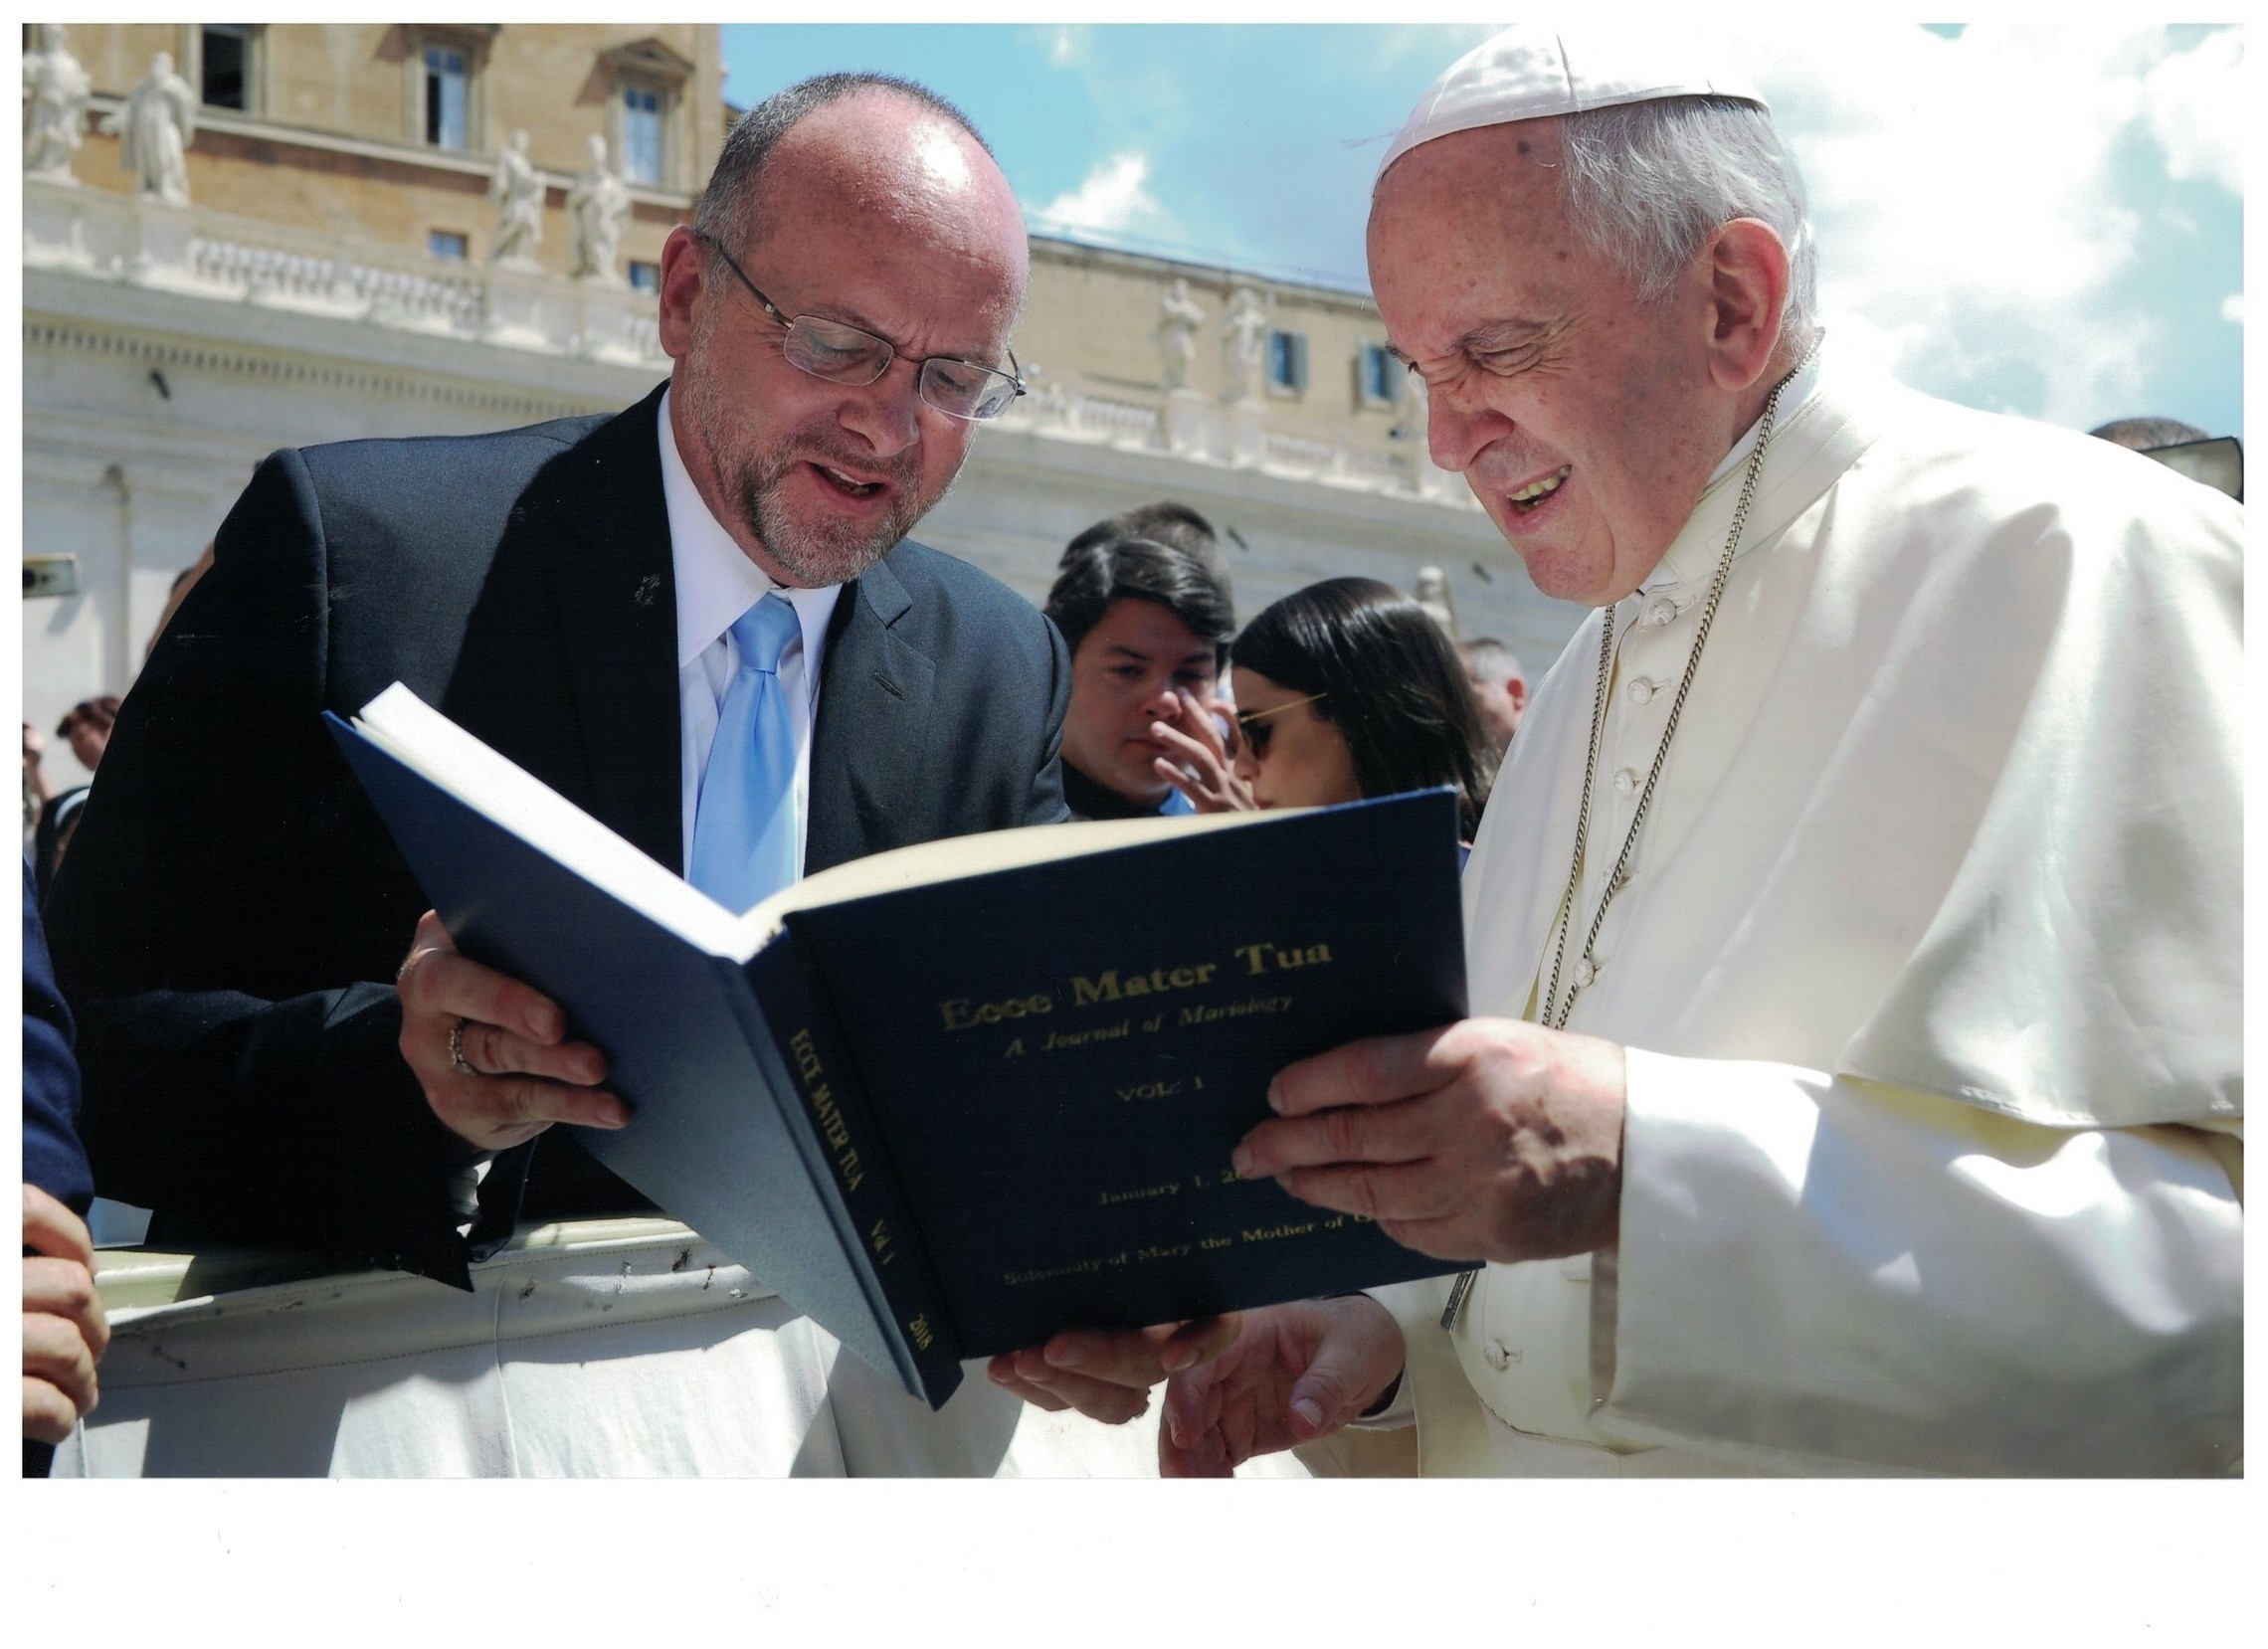 Dr. Mark Miravalle, President of the IMA, presenting hard bound volume of Ecce Mater Tua to Pope Francis